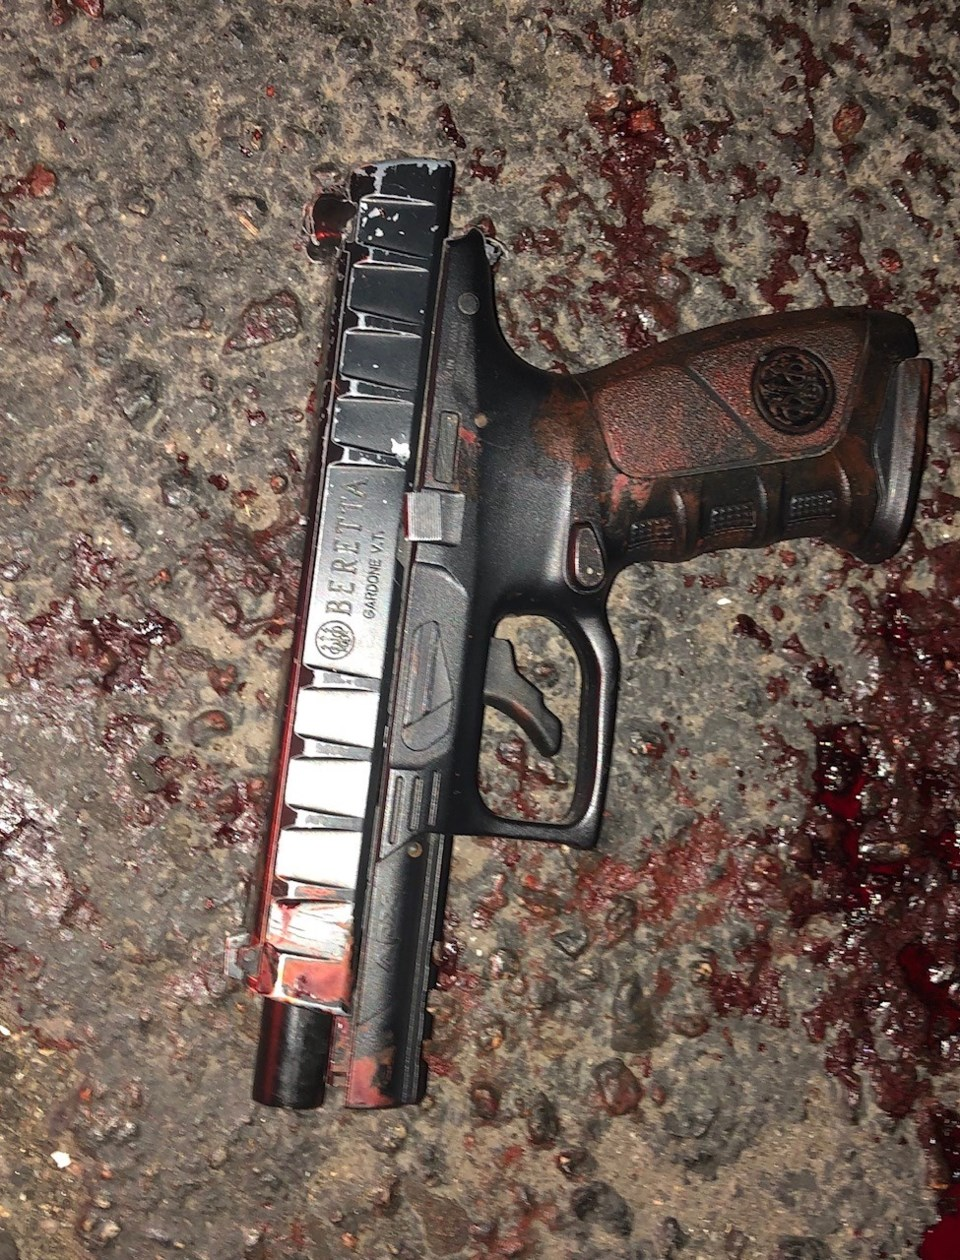 2020_07_10_LL_officer_involved_shooting_gun_recovered